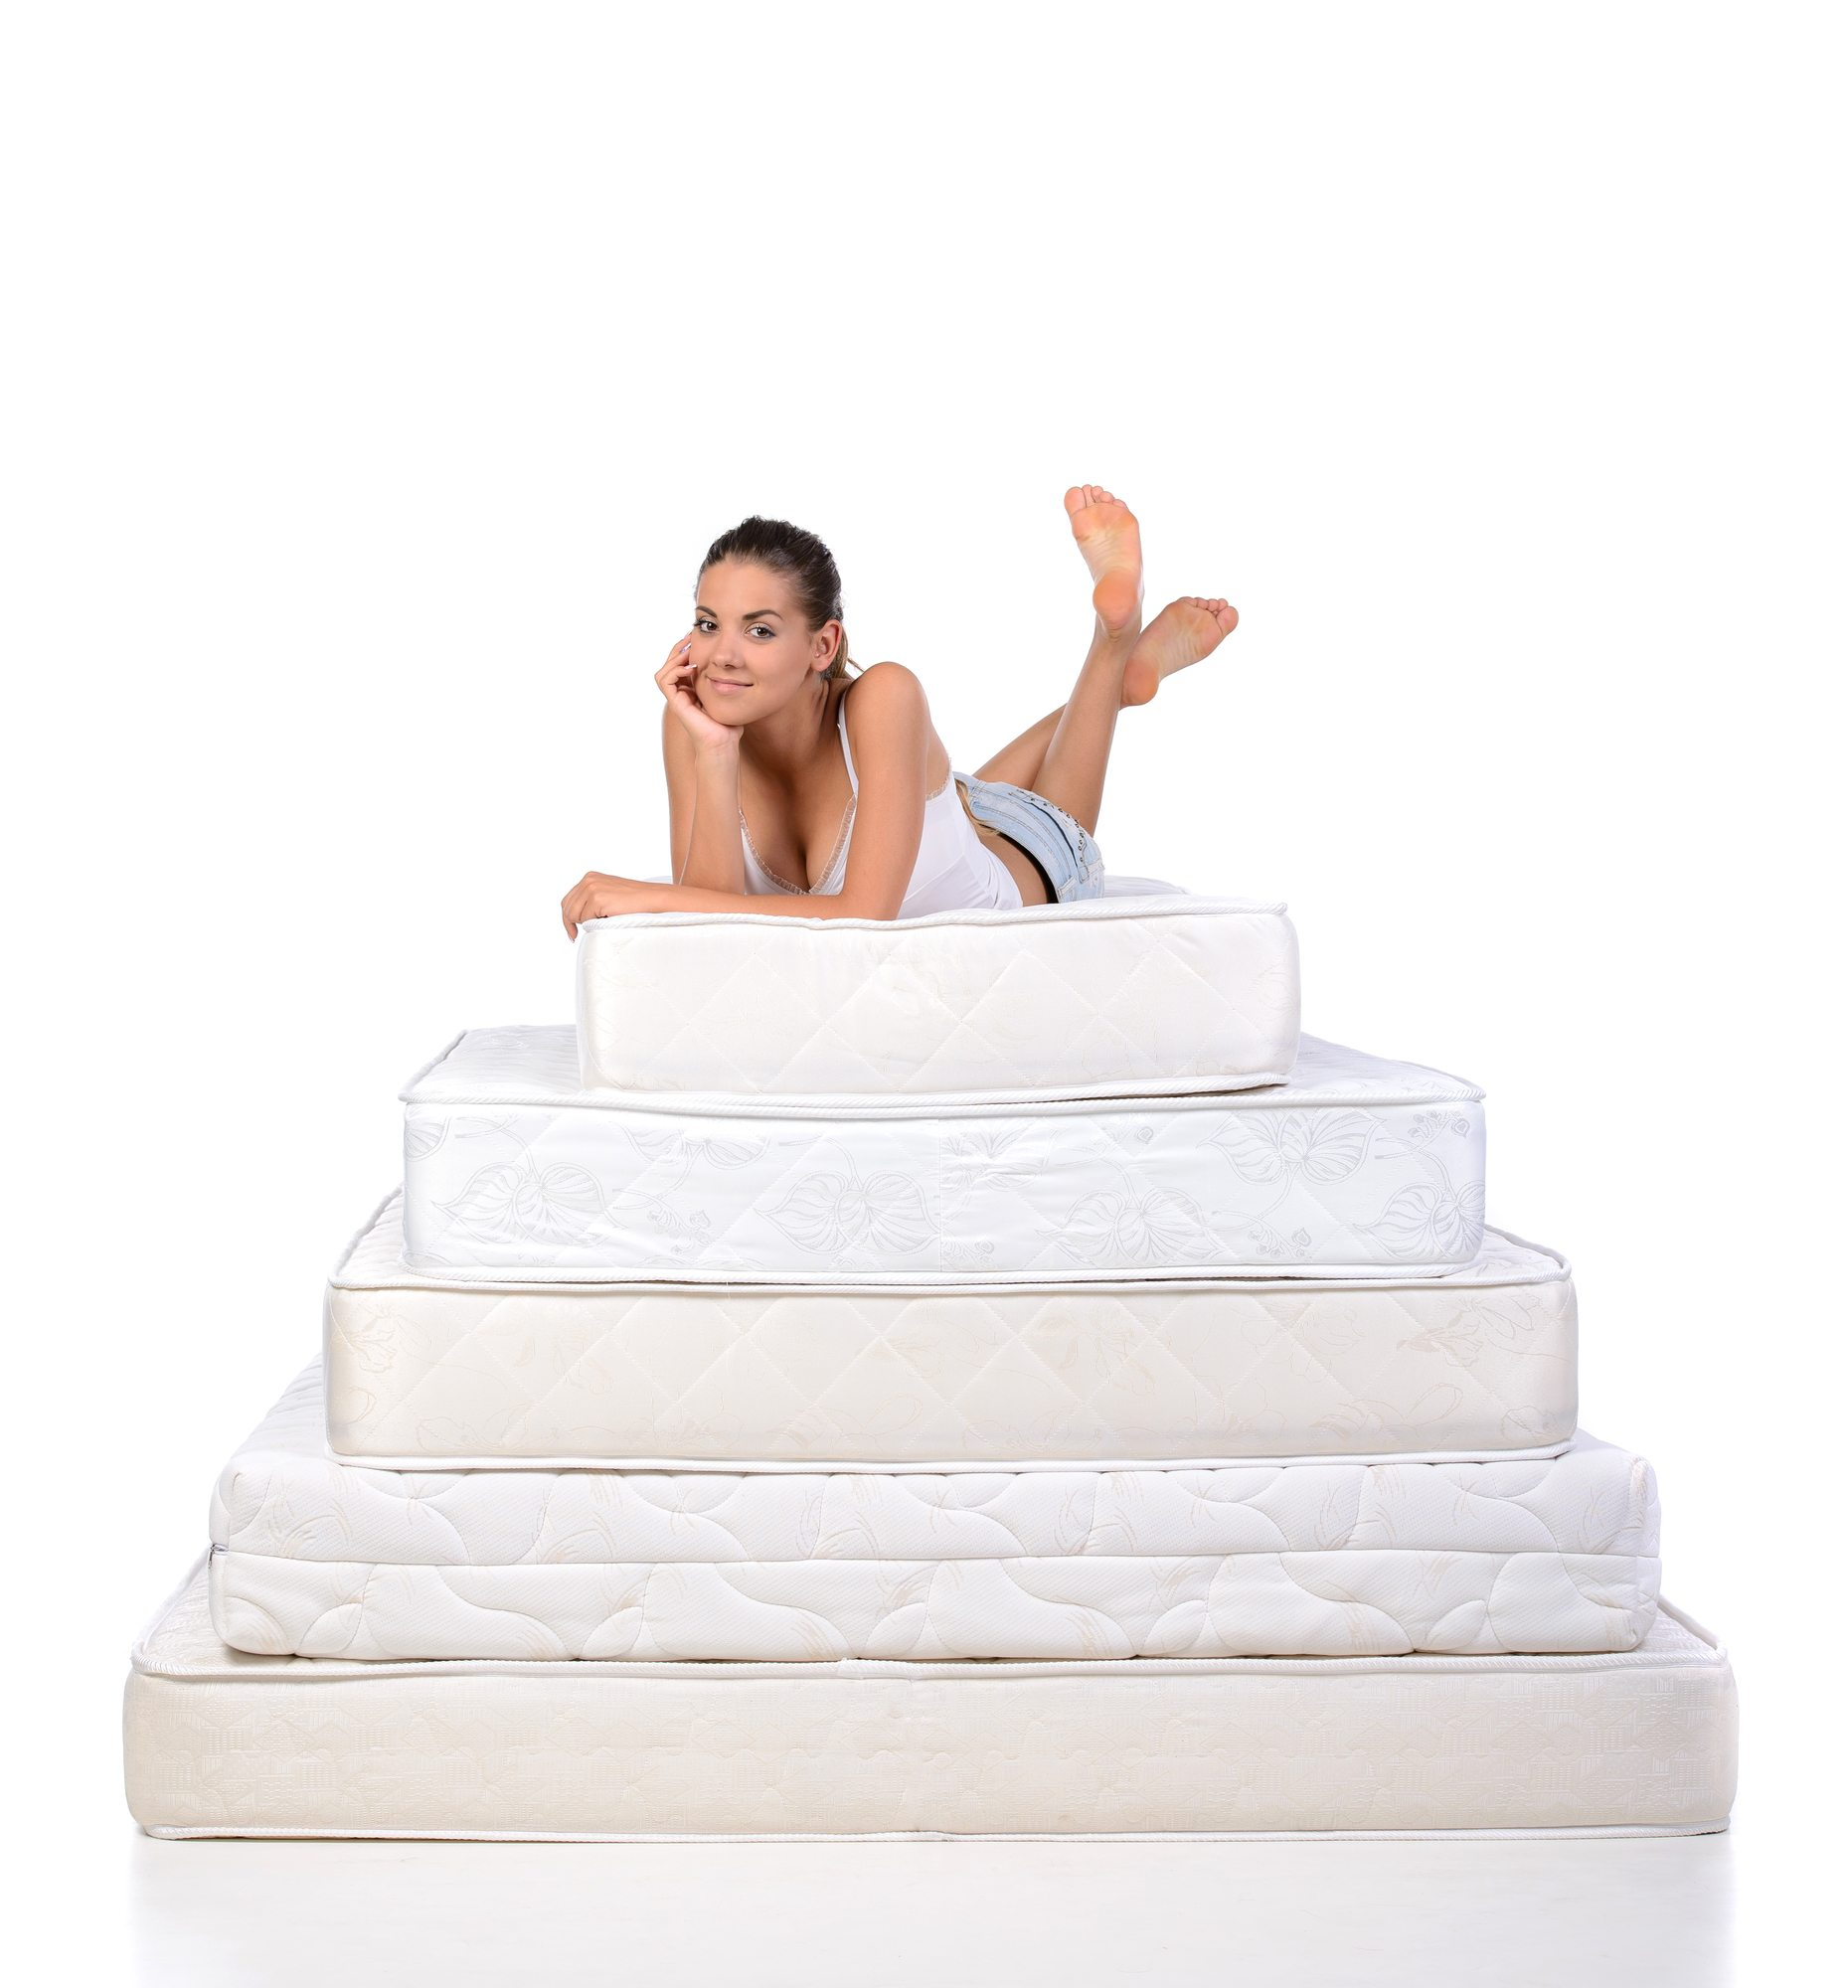 plush p koil productreview mattress chiropractor reviews com king recommended chiro au posture